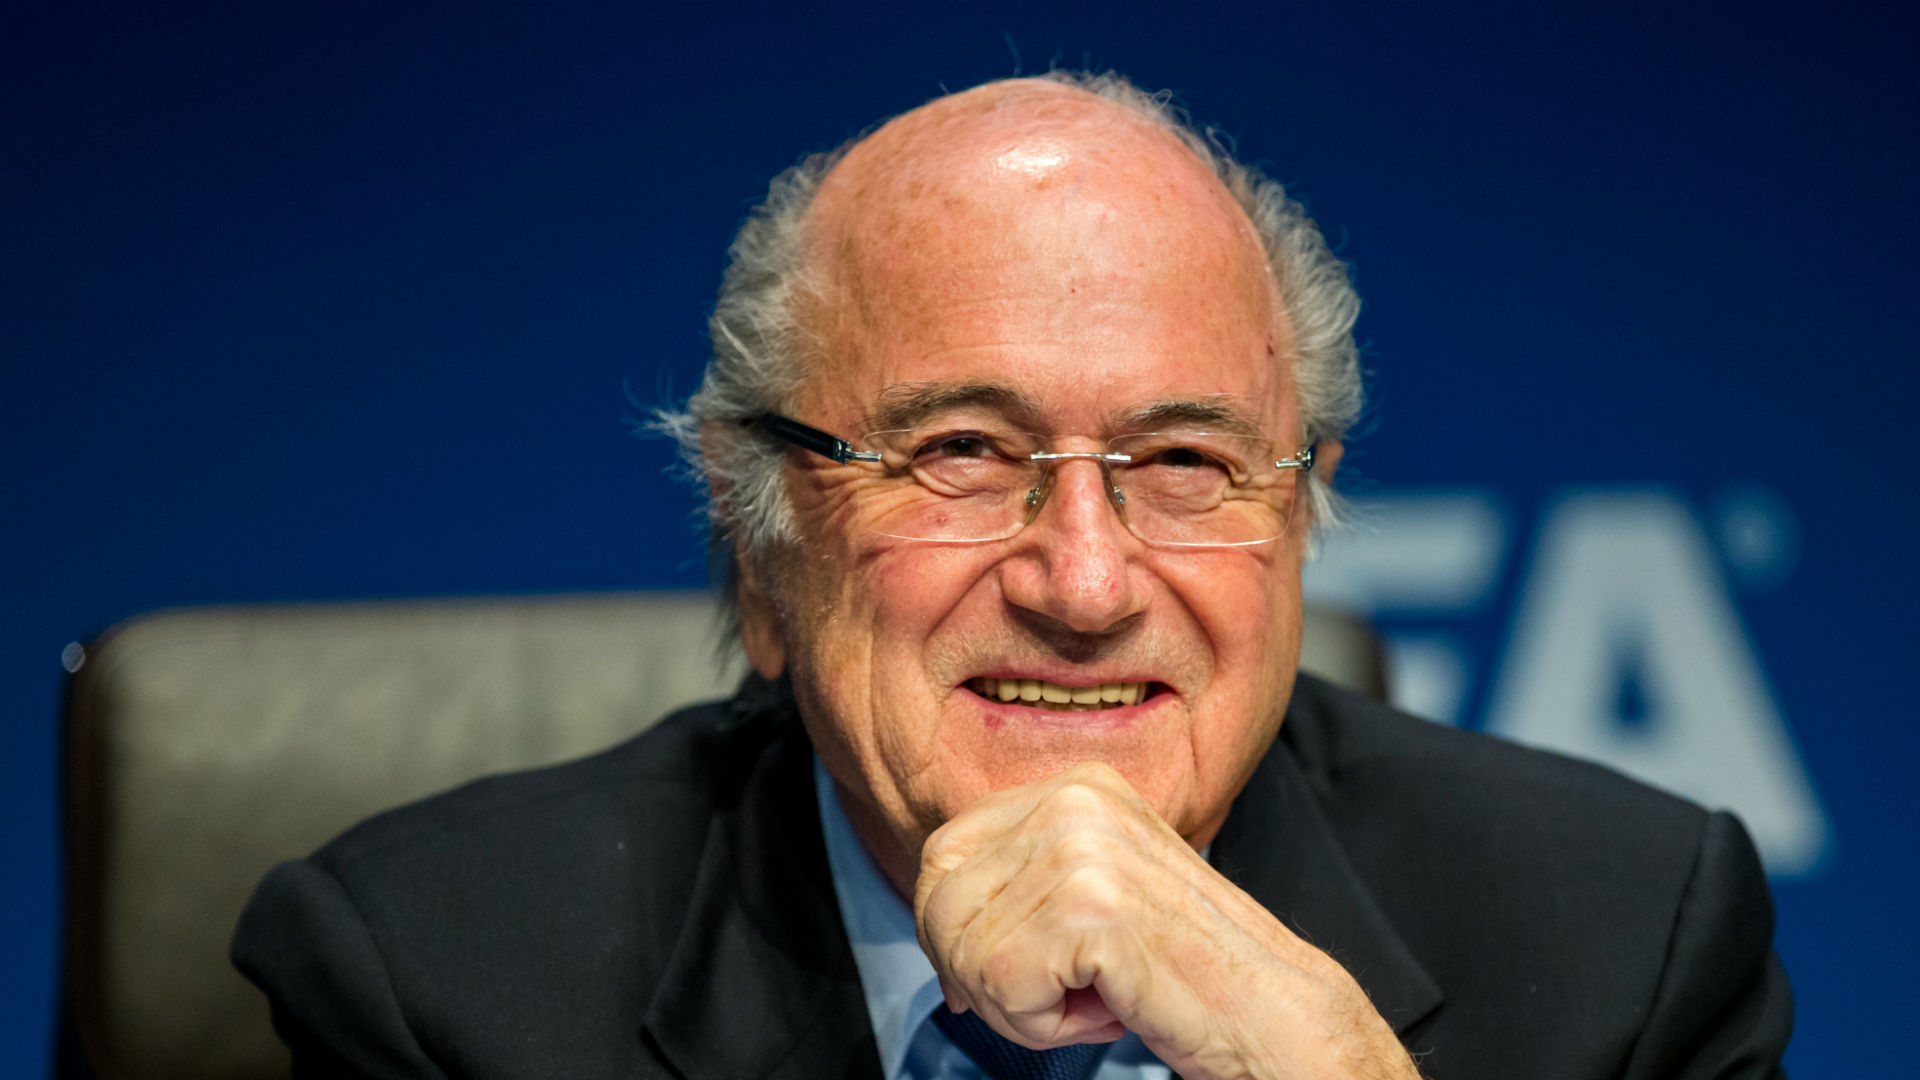 Defiant FIFA chief Sepp Blatter challenges accusers to prove corruption claims